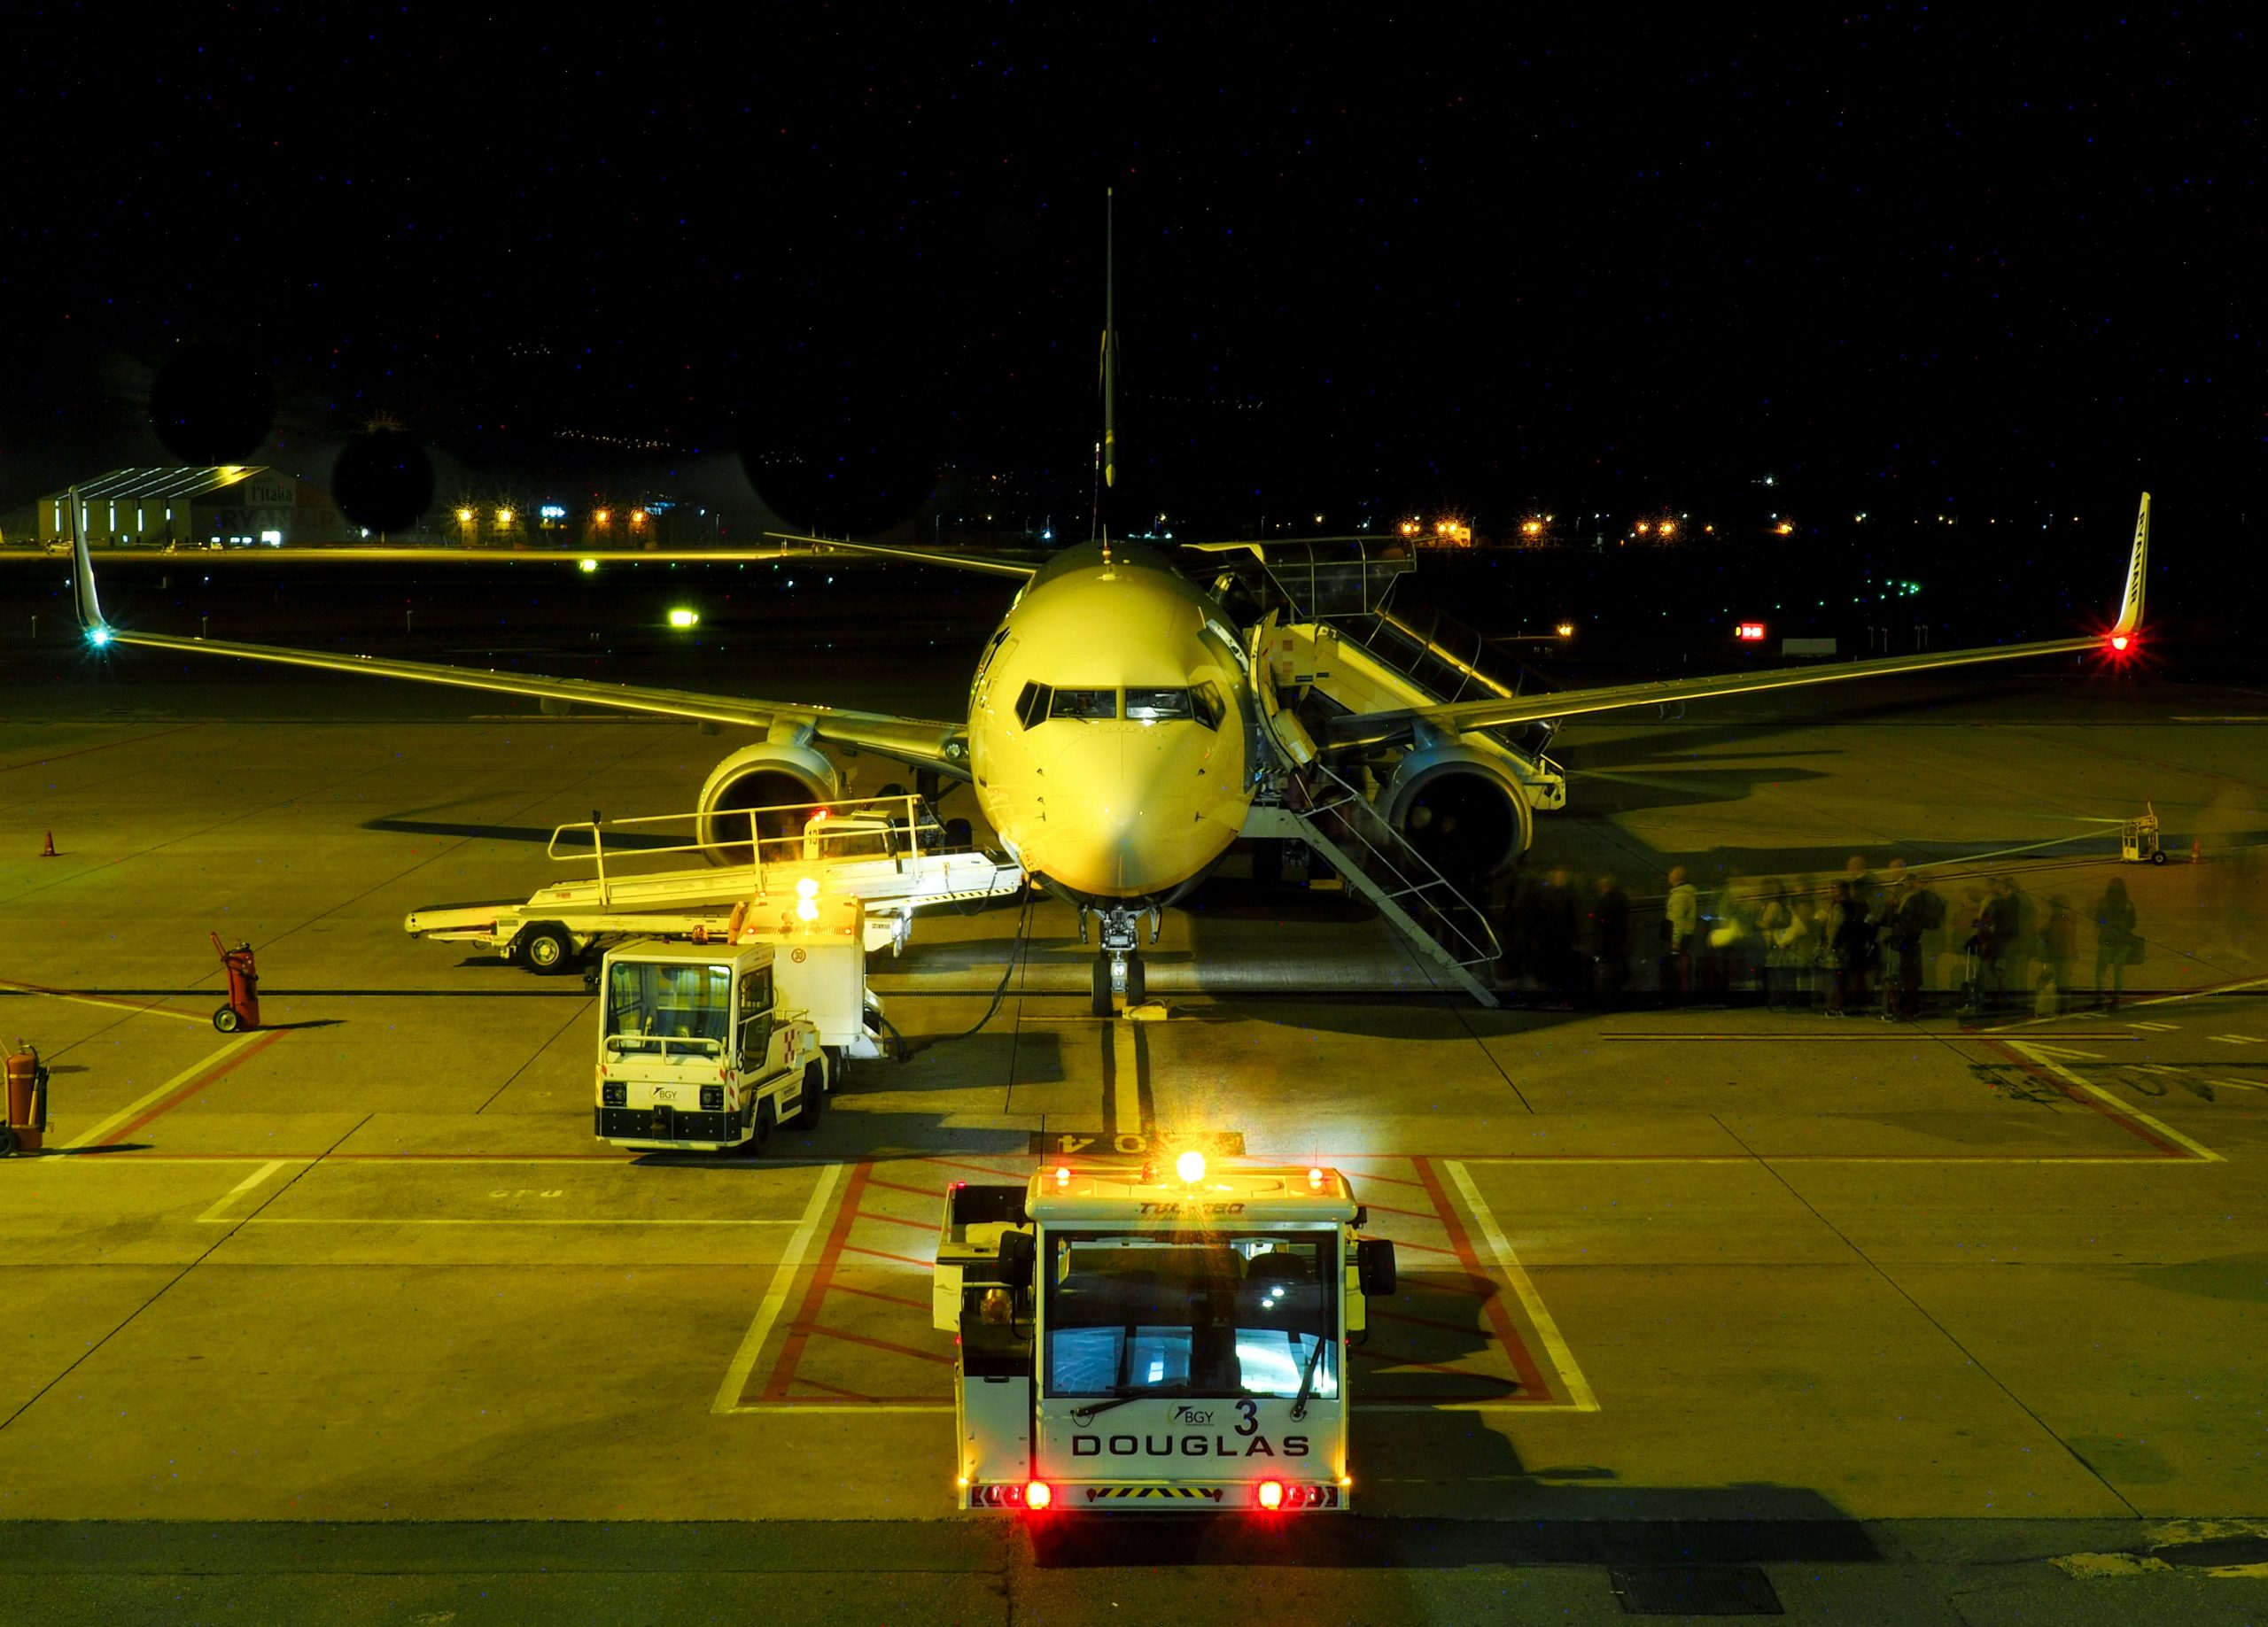 Operational congestion occurs in highly localized environments such as airports